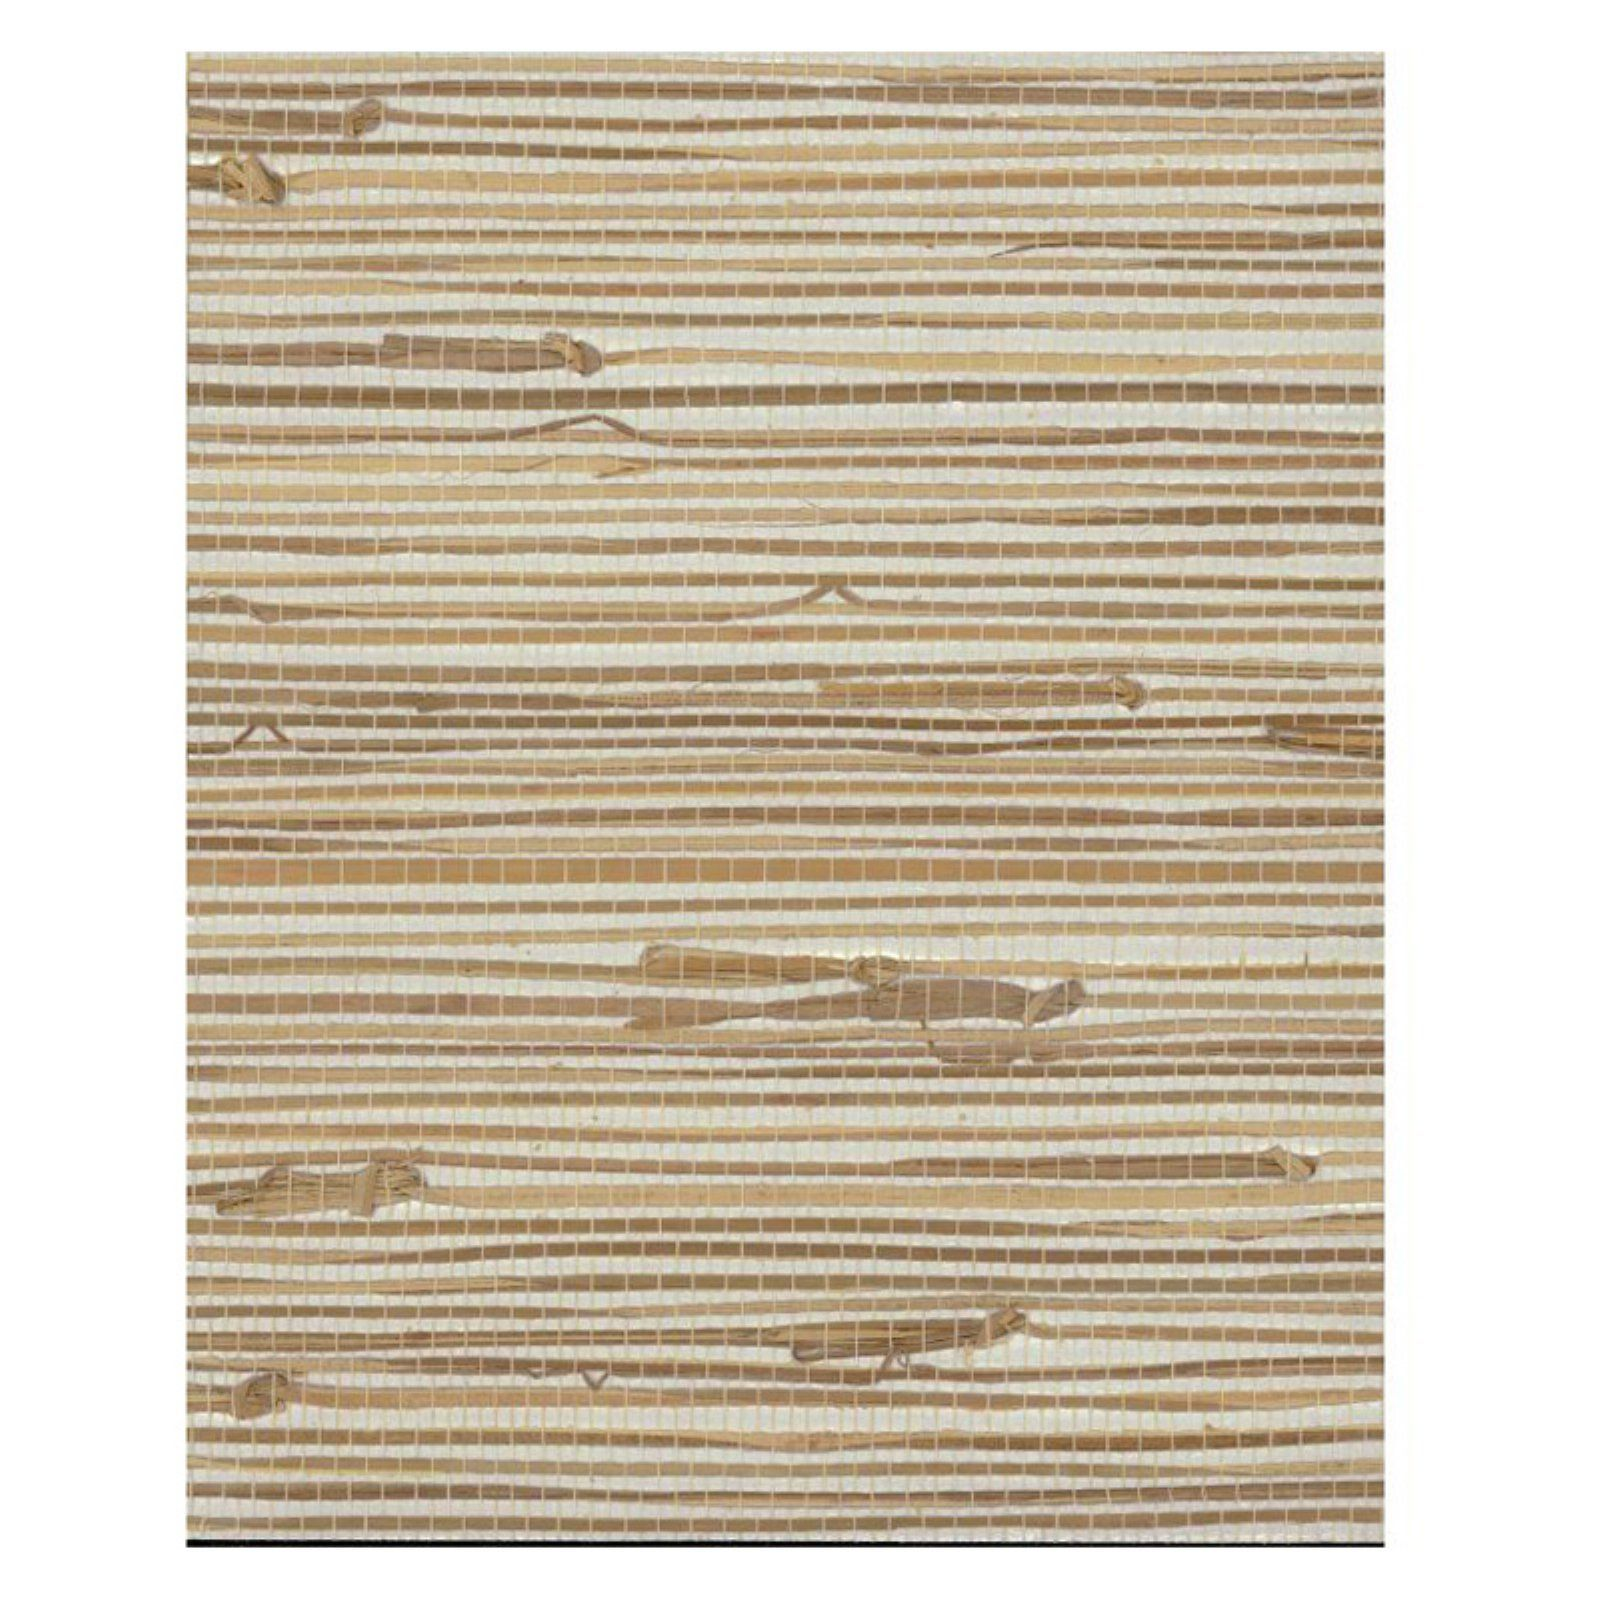 York Wallcoverings Grasscloth Wide Knotted Grass Wallpaper